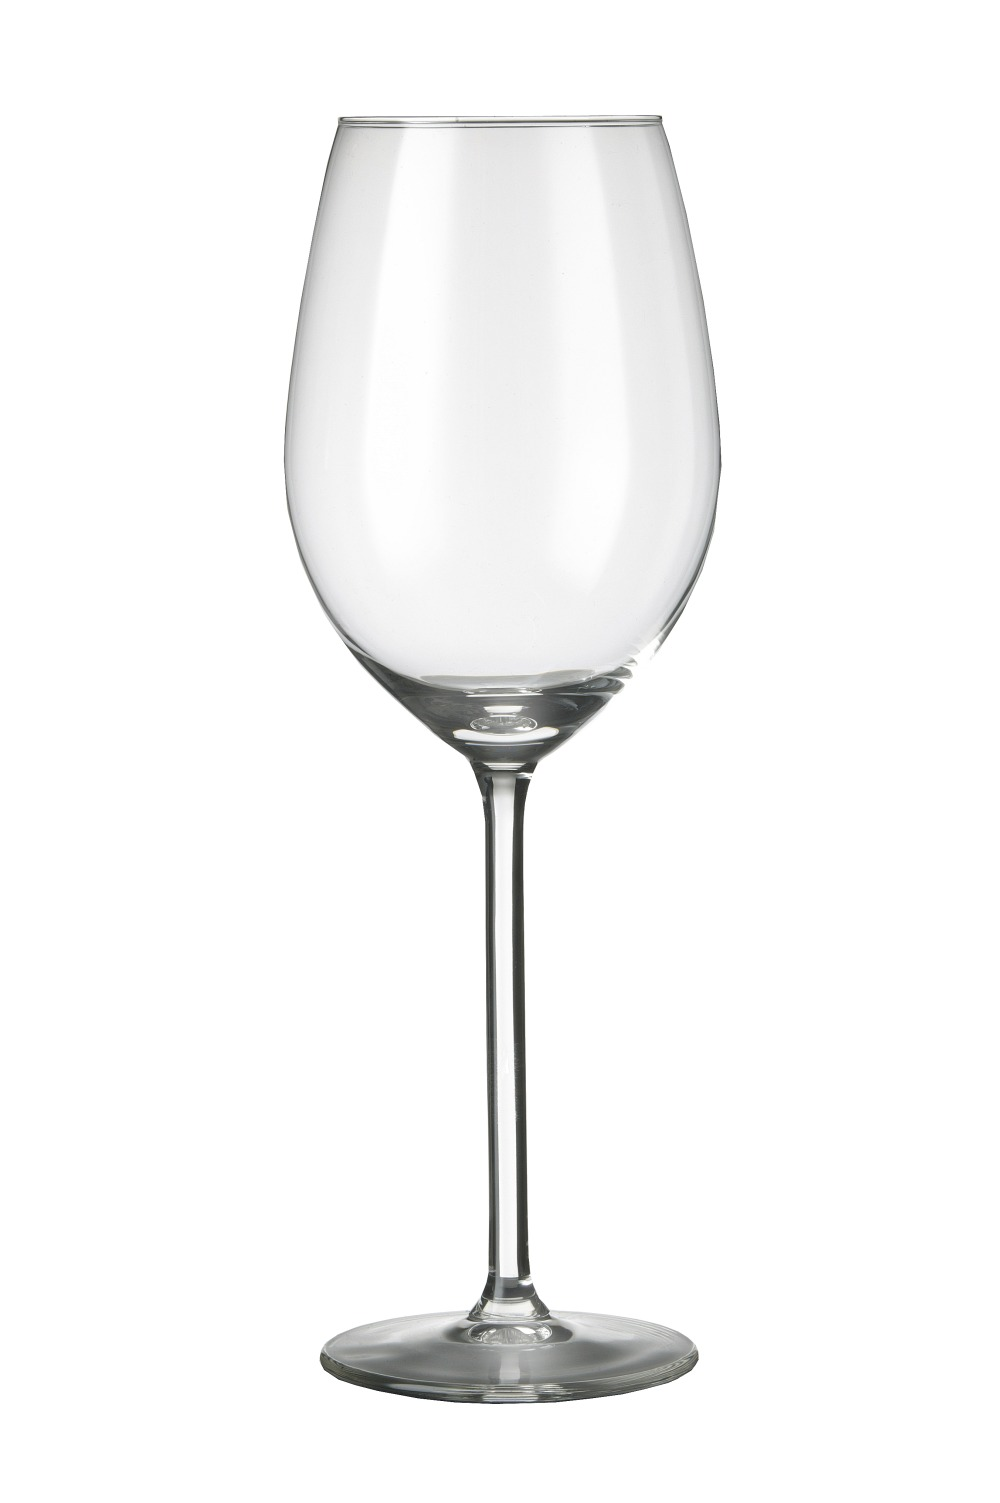 royal_leerdam_wijnglas_allure_54cl.jpg